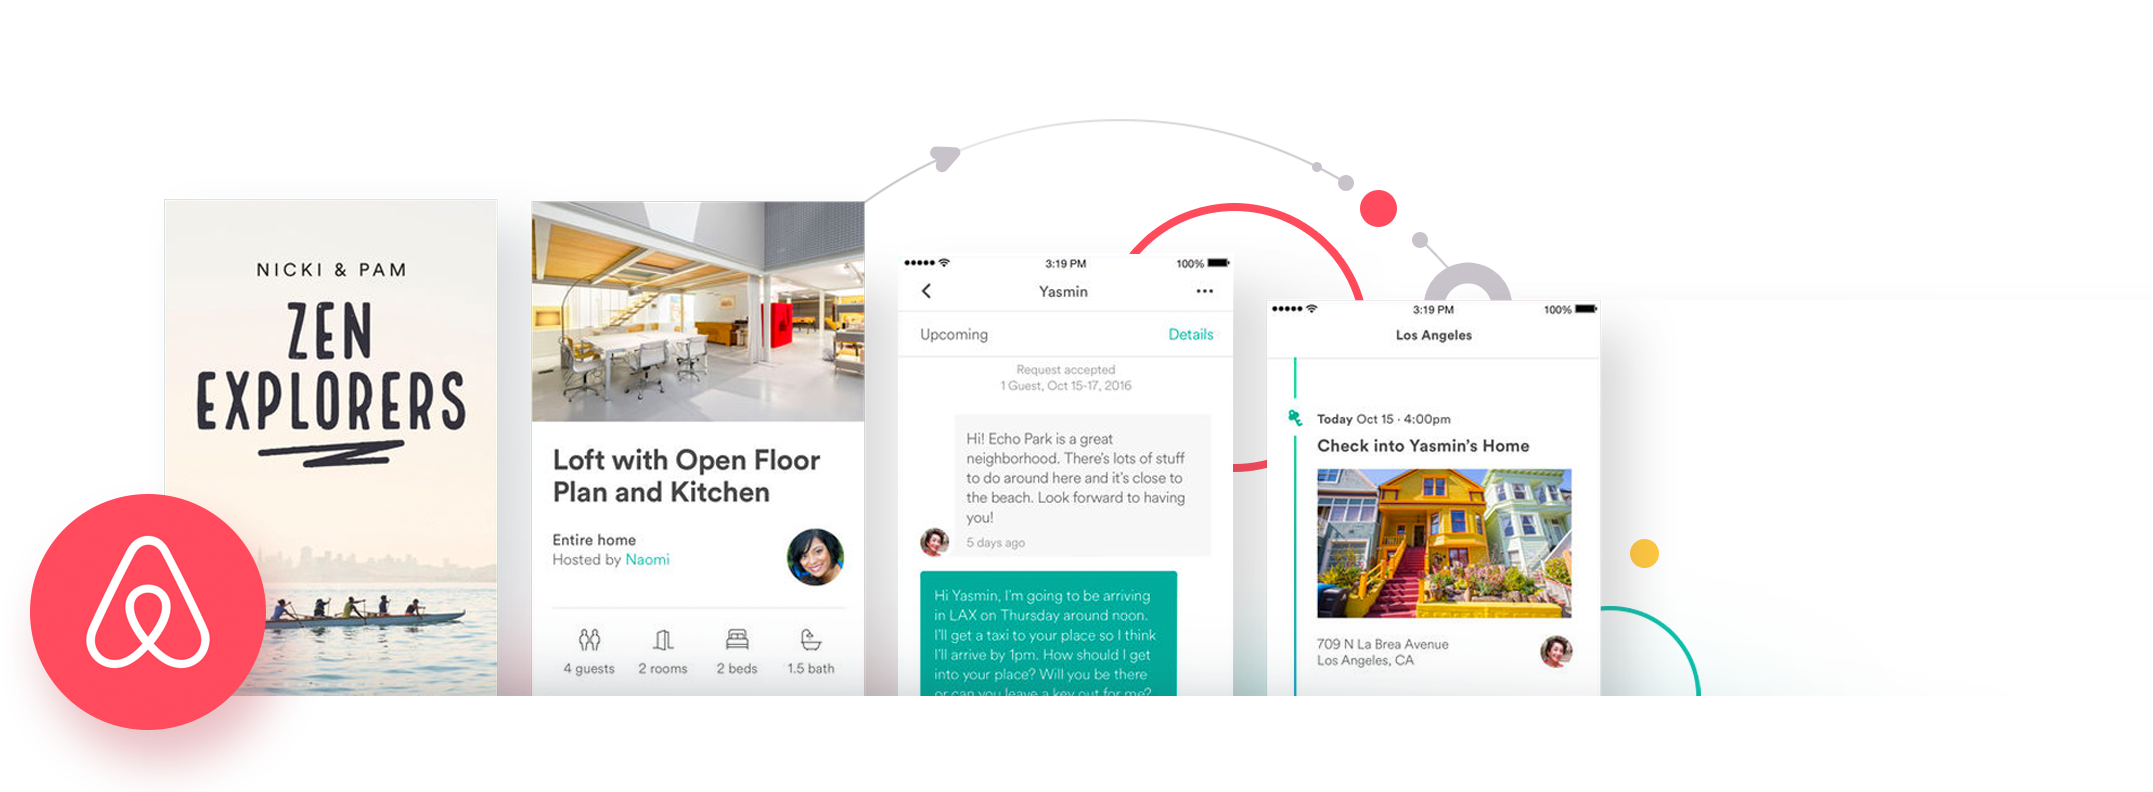 AirBnB React Native App